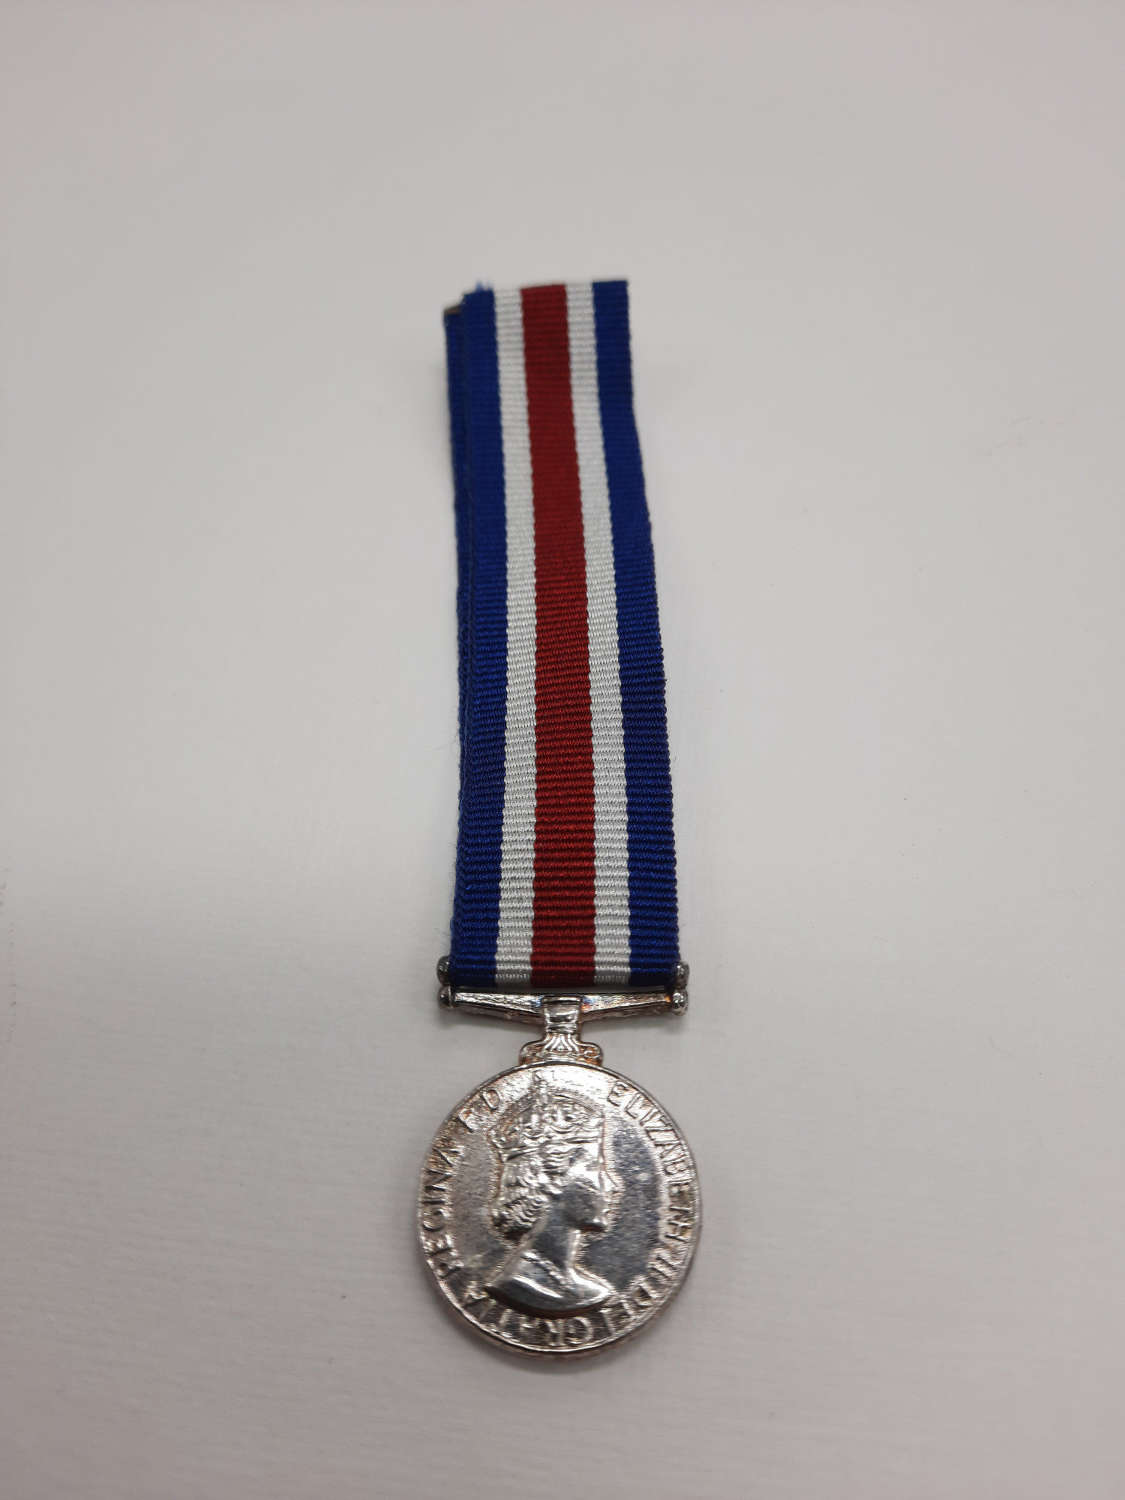 Queen's Medal for Champion Shots Miniature